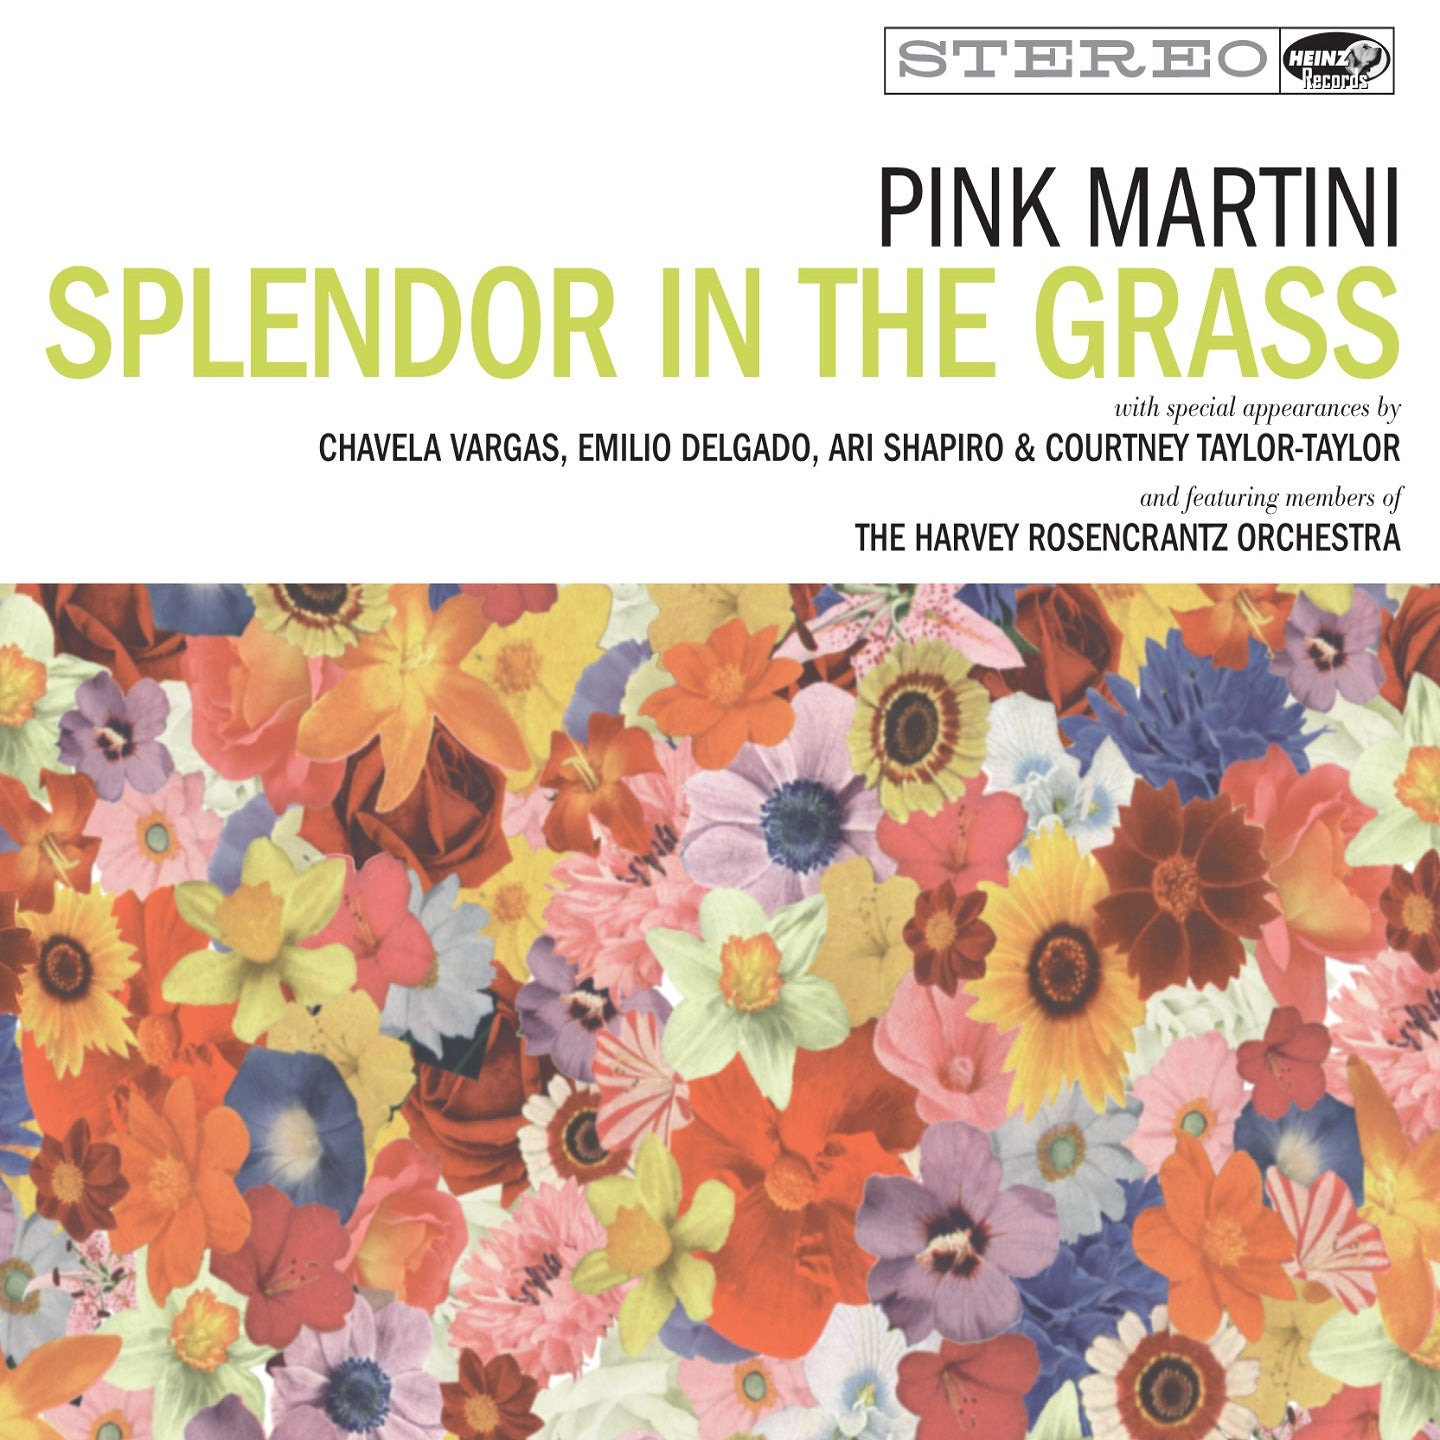 Pink Martini - Splendor in the grass (CD)